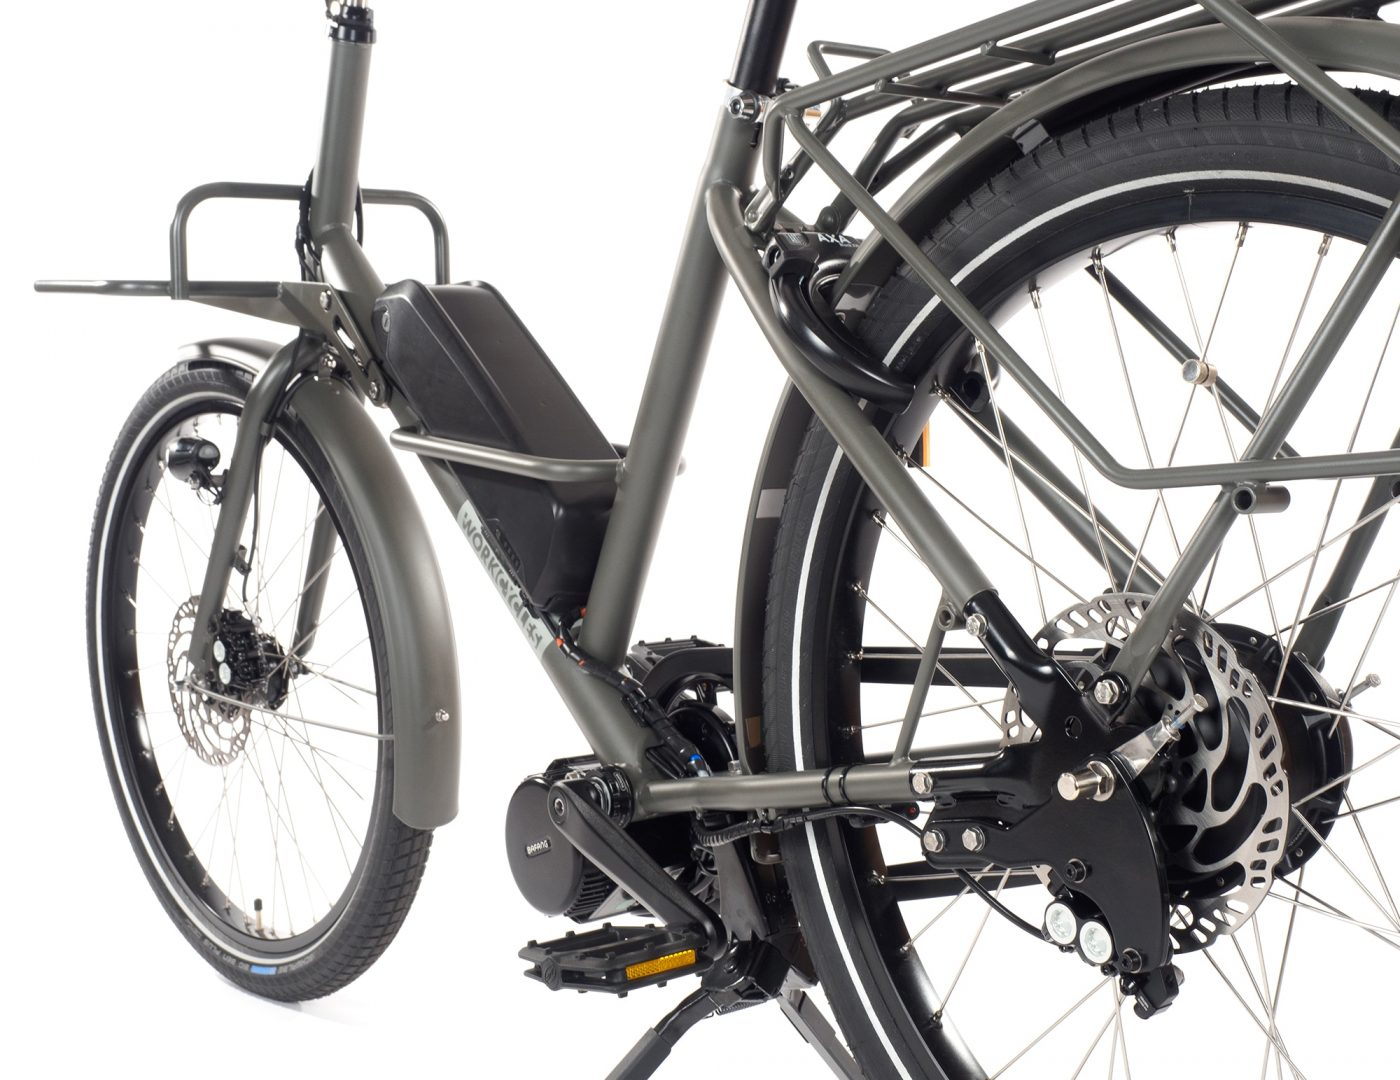 At WorkCycles every detail counts, whether it's cable routing, stainless hardware or our rear tire escape hatch